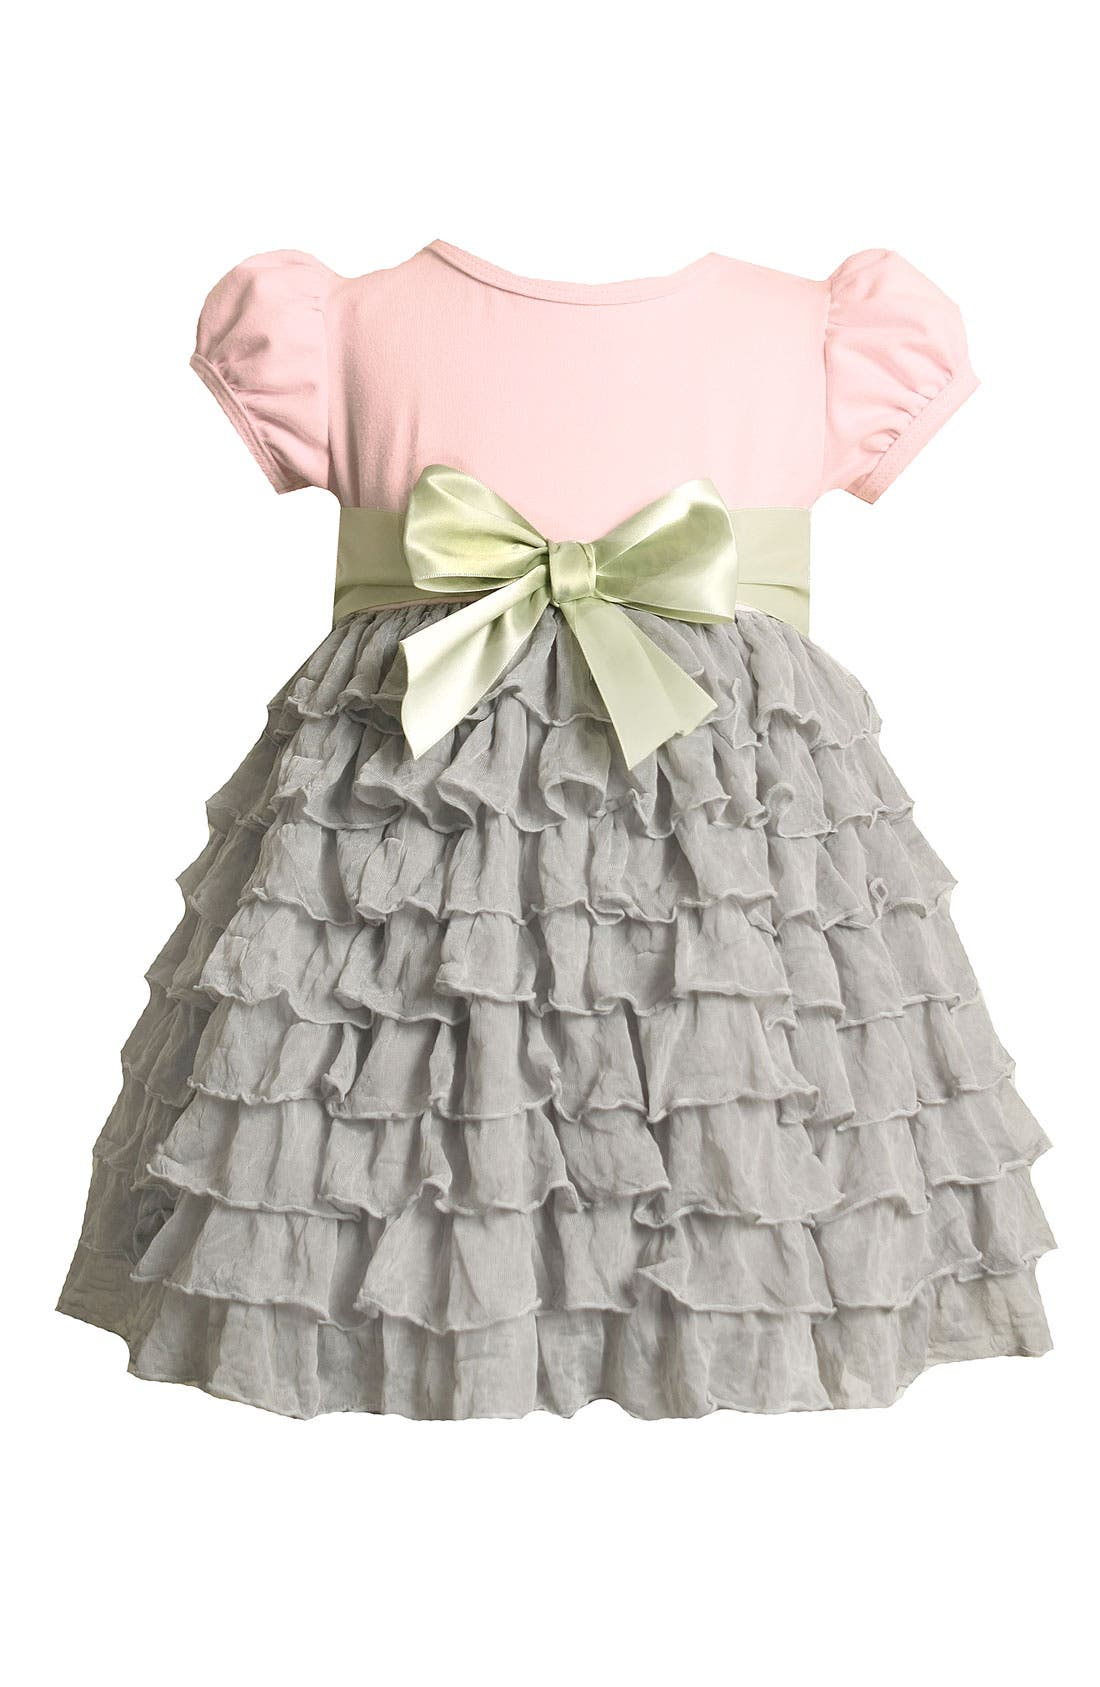 Alternate Image 1 Selected - Iris & Ivy Tiered Dress (Toddler)